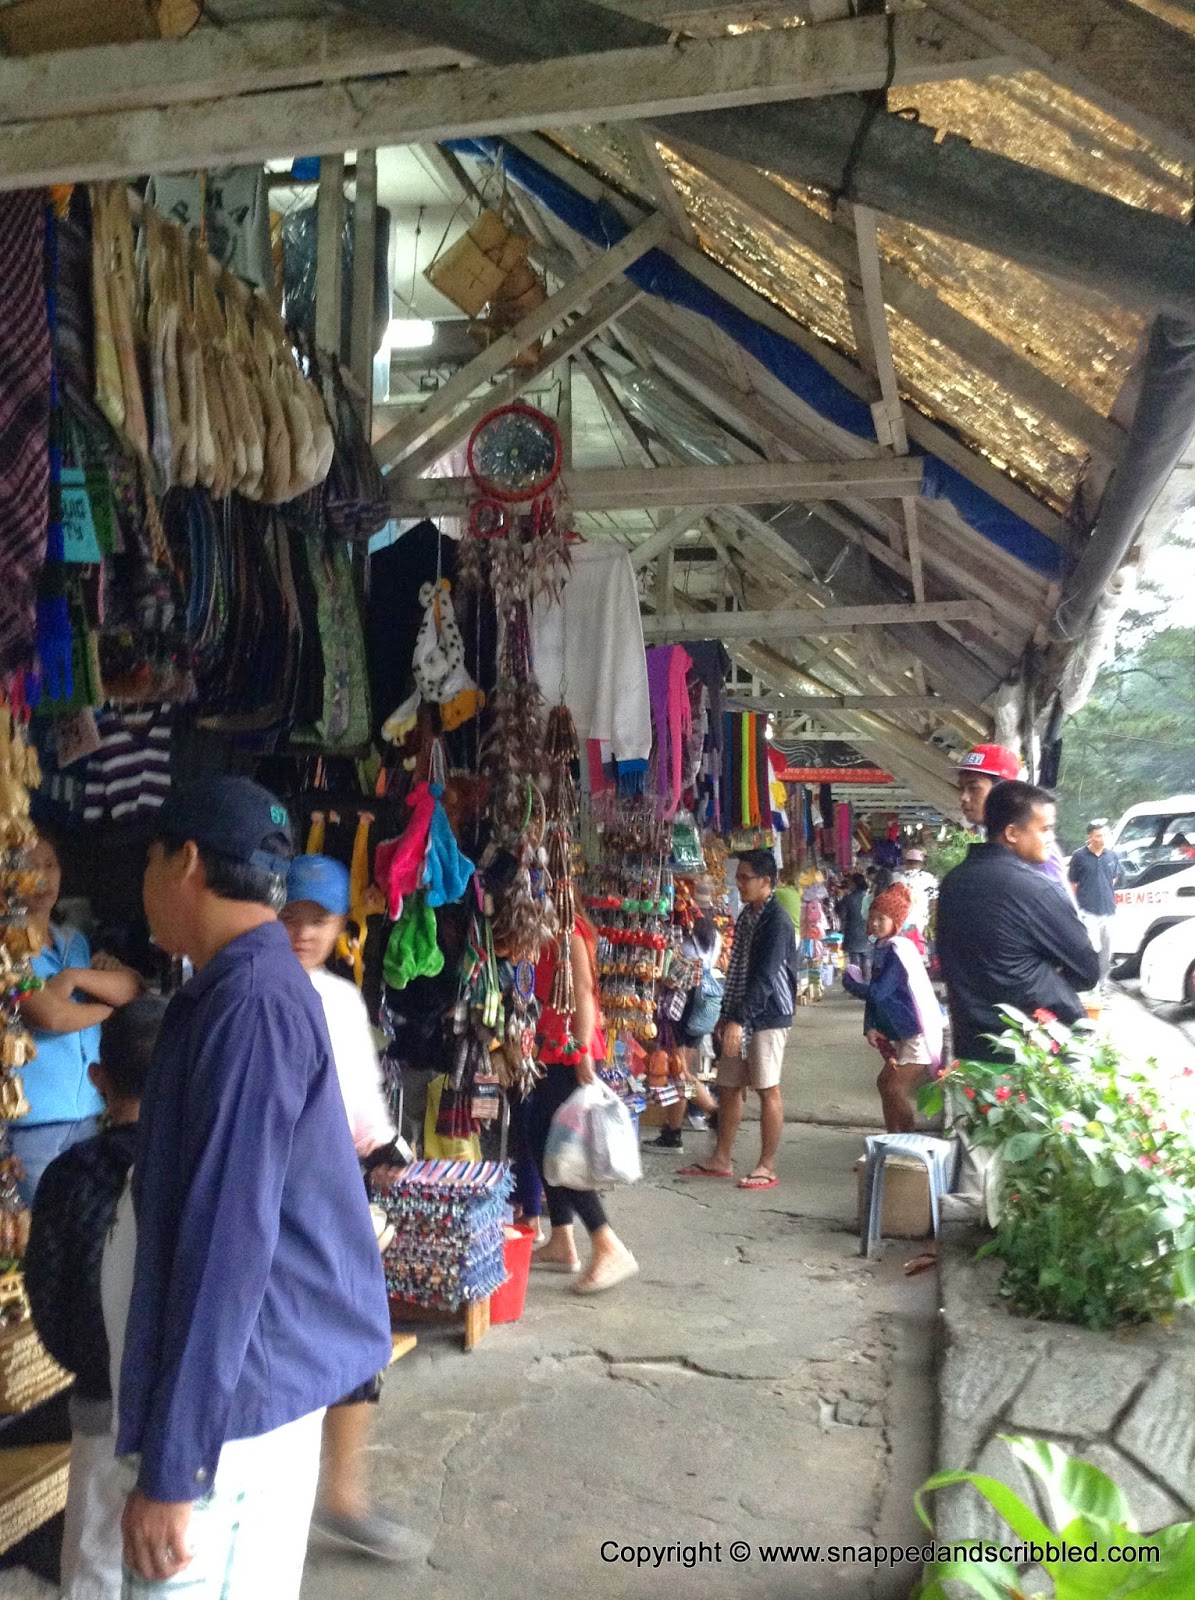 What To Do In Baguio: Visit Mines View Park and Souvenir Shops